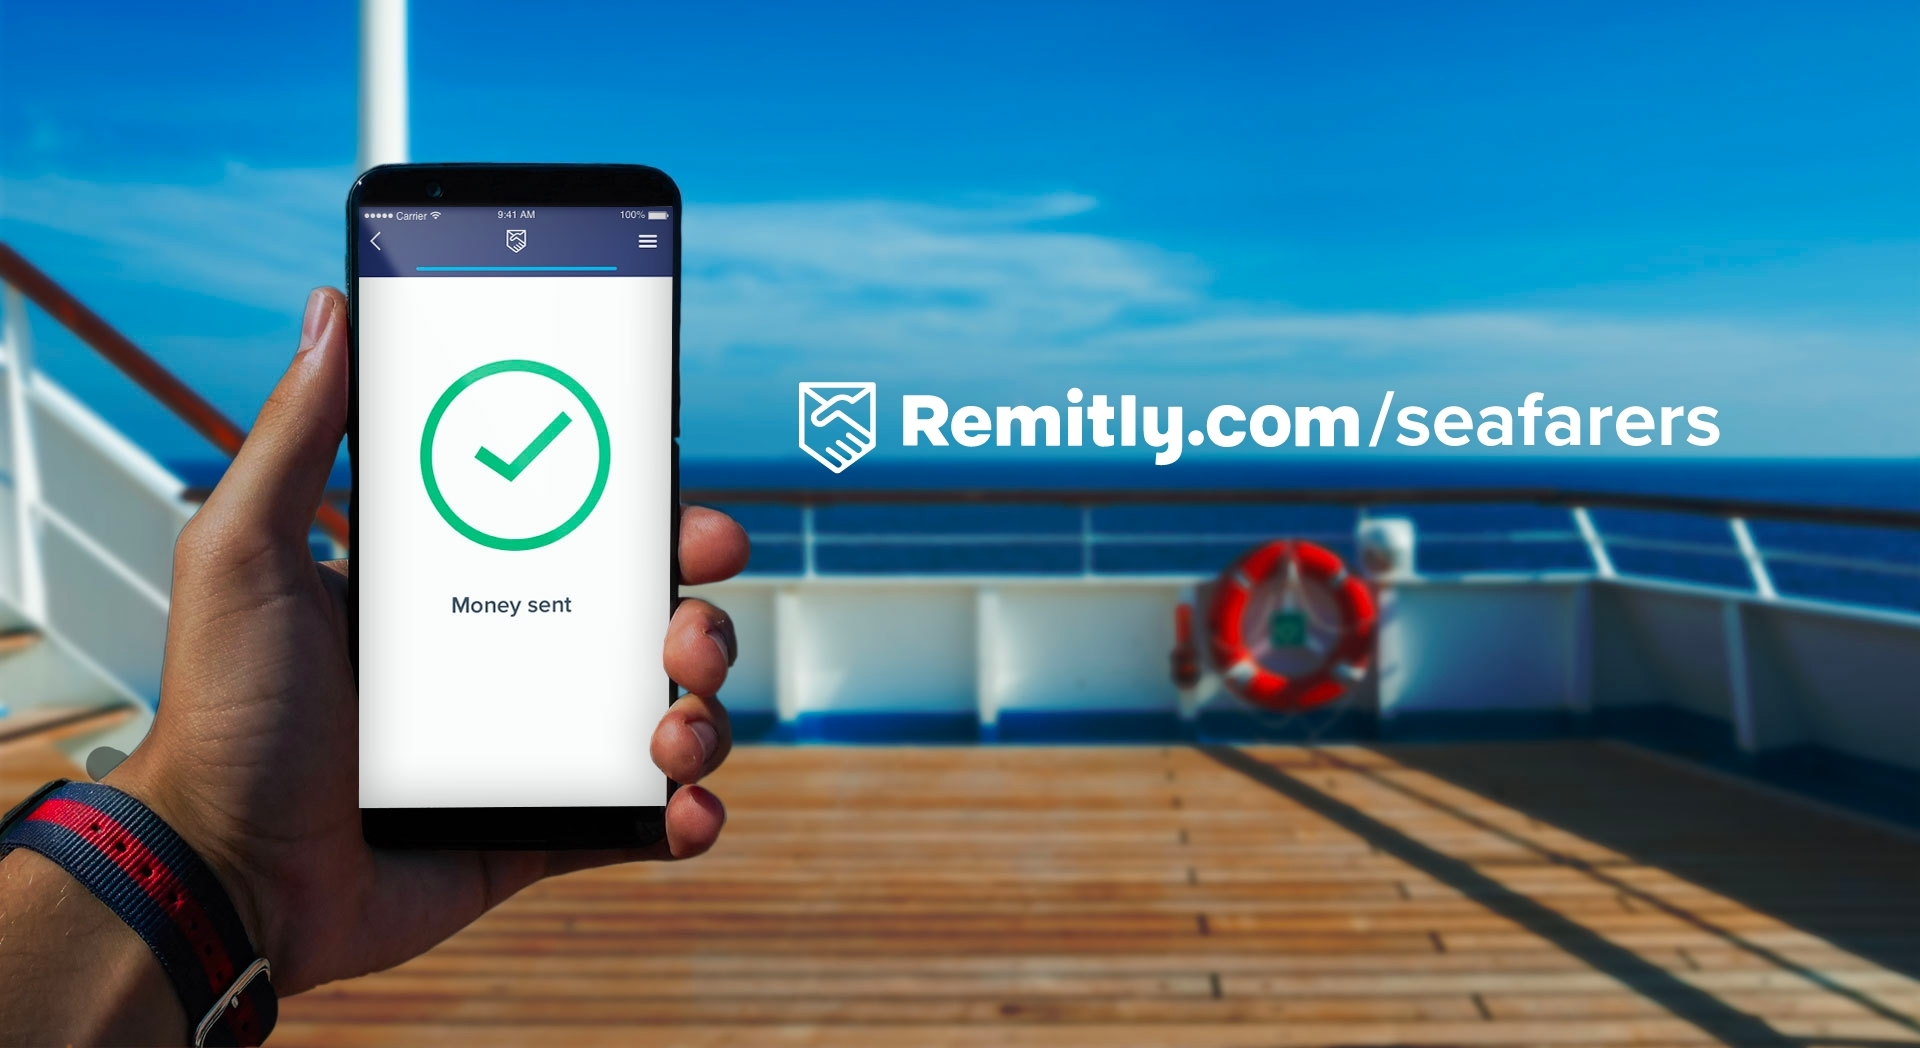 Money Transfer Service To More Cruise